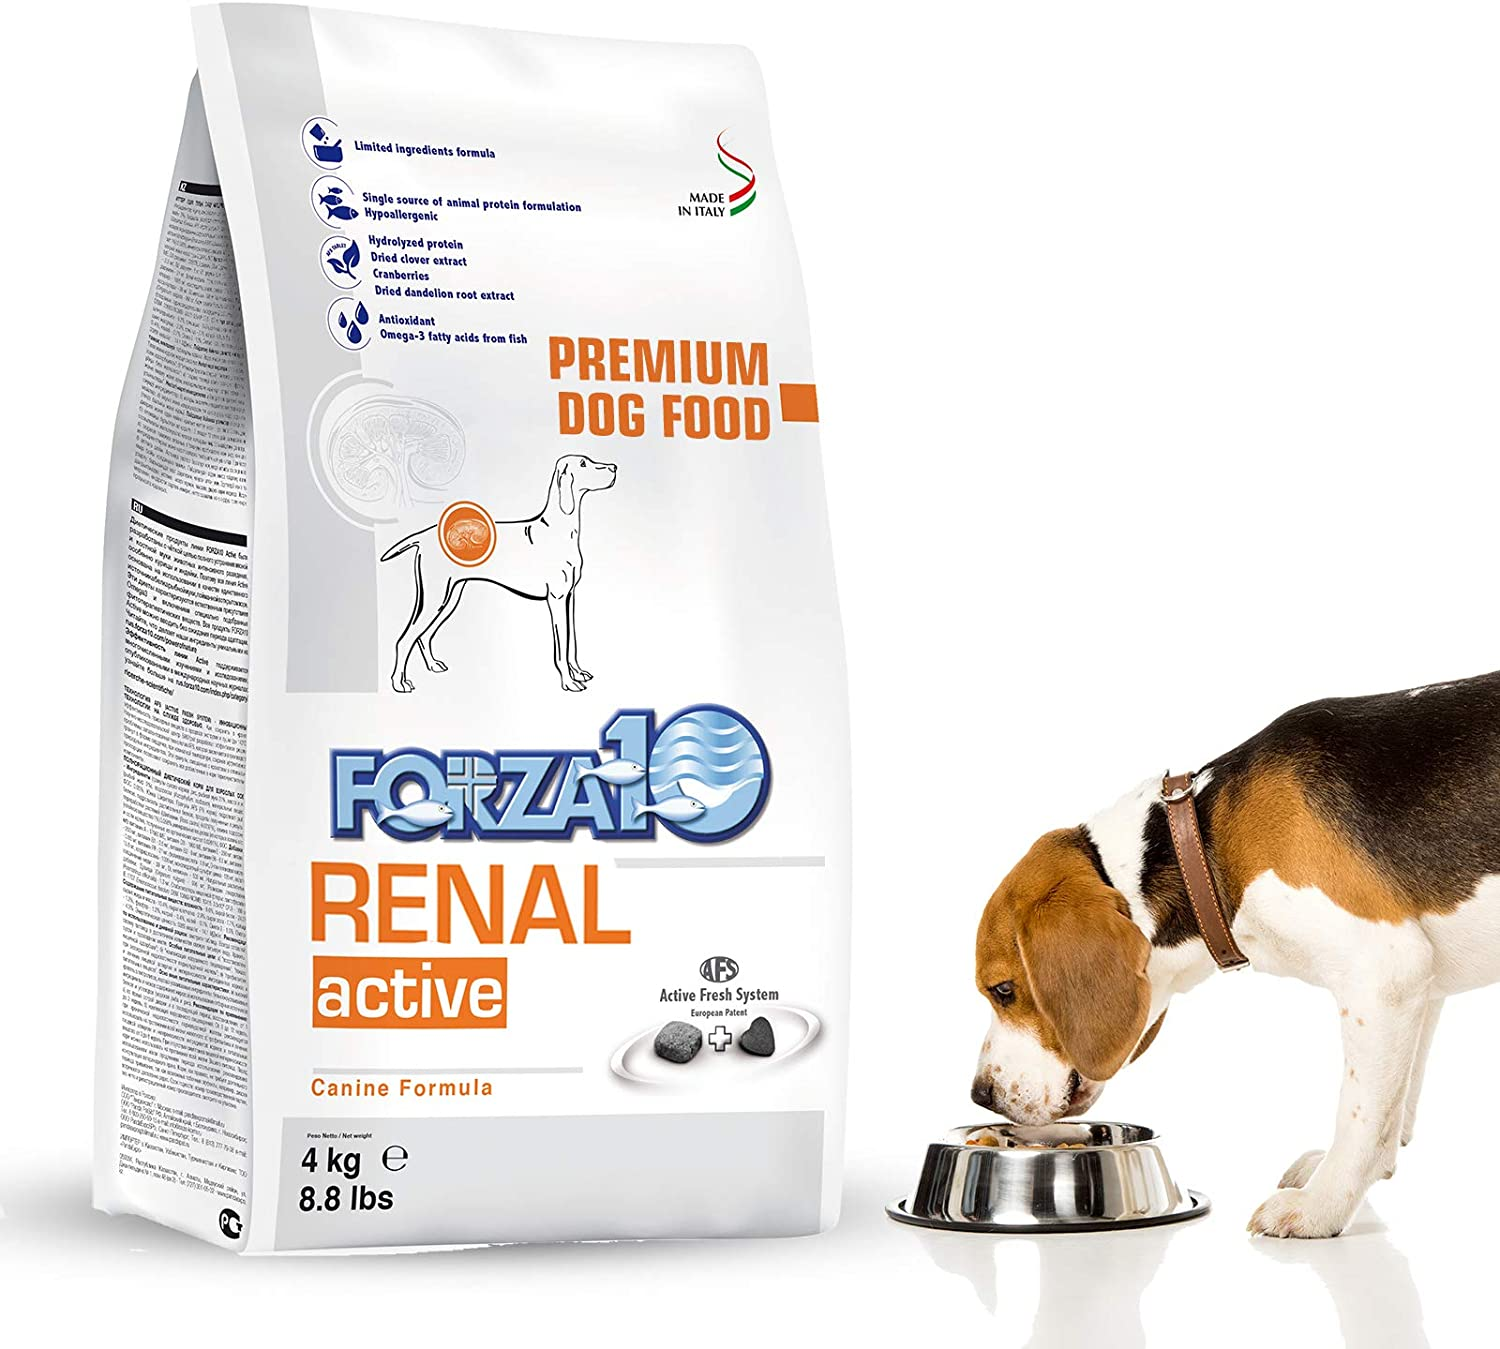 Forza10 Dry Dog Food for Kidney Renal Care - Specially Formulated Adult Dog Food for Large, Medium, Small Breeds, 8.8 Pounds